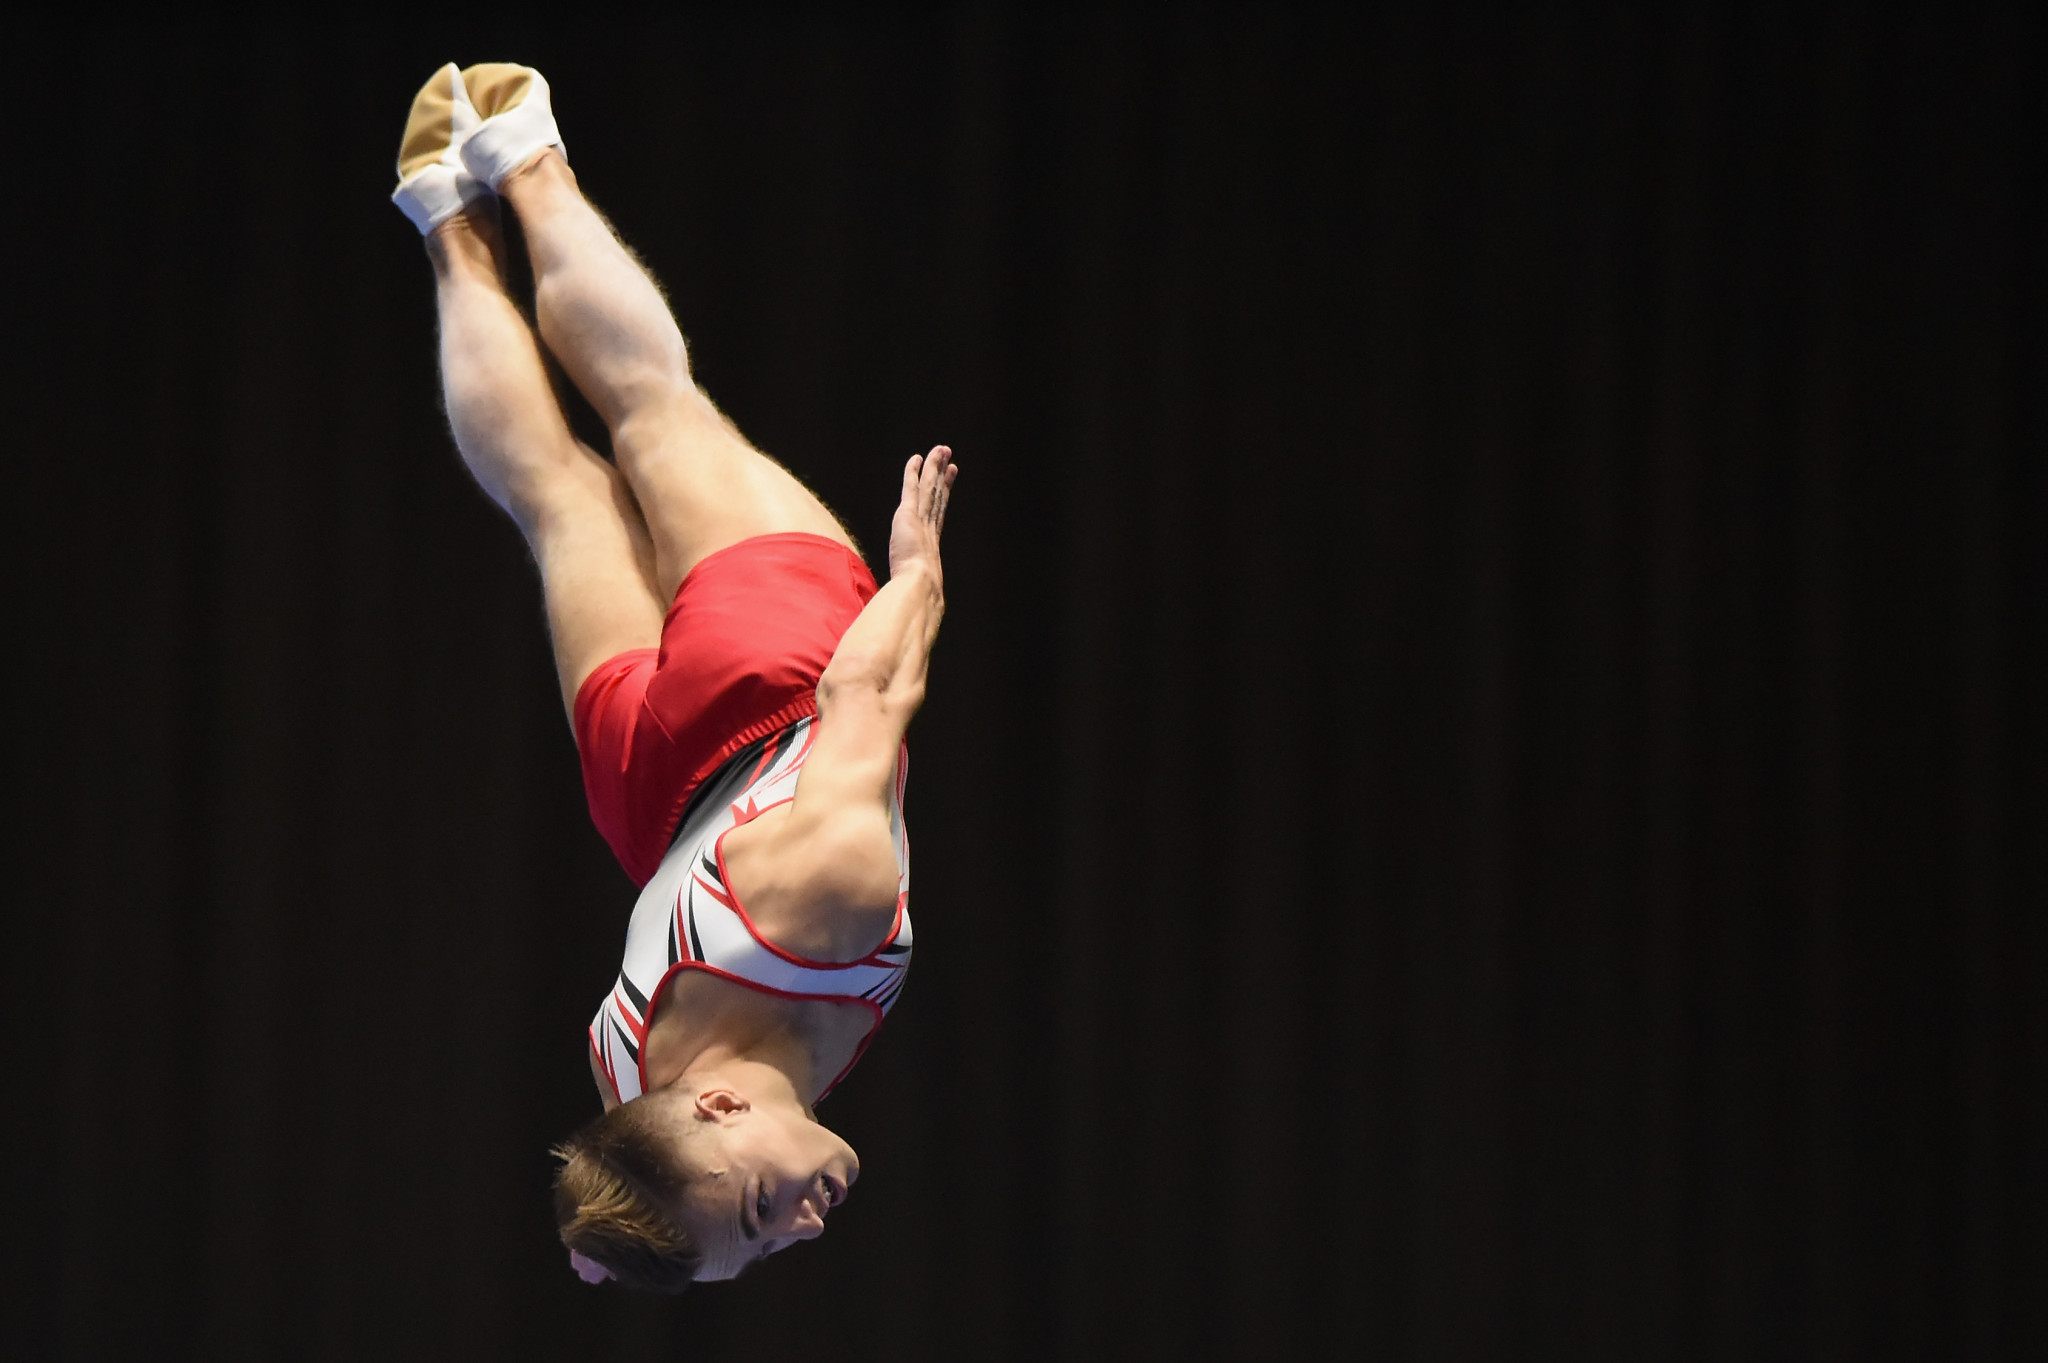 The Trampoline World Cup event in Baku in Azerbaijan has been cancelled ©Getty Images